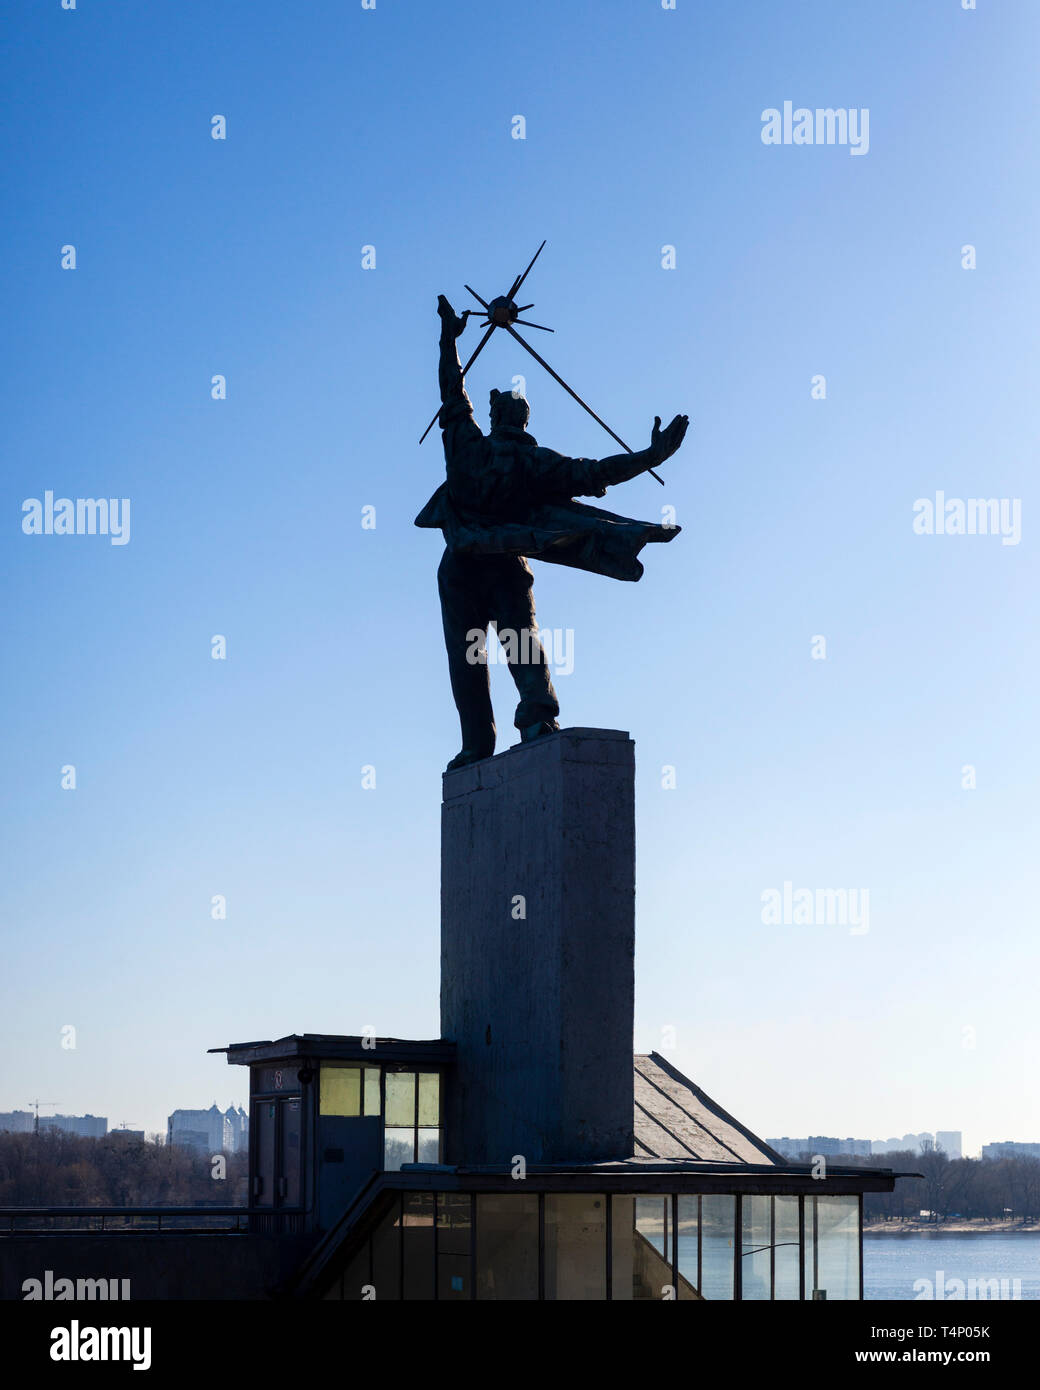 Staircase pavillon with statue of boy holding a Sputnik satellite at Dnipro metro station, Kiev, Ukraine. - Stock Image